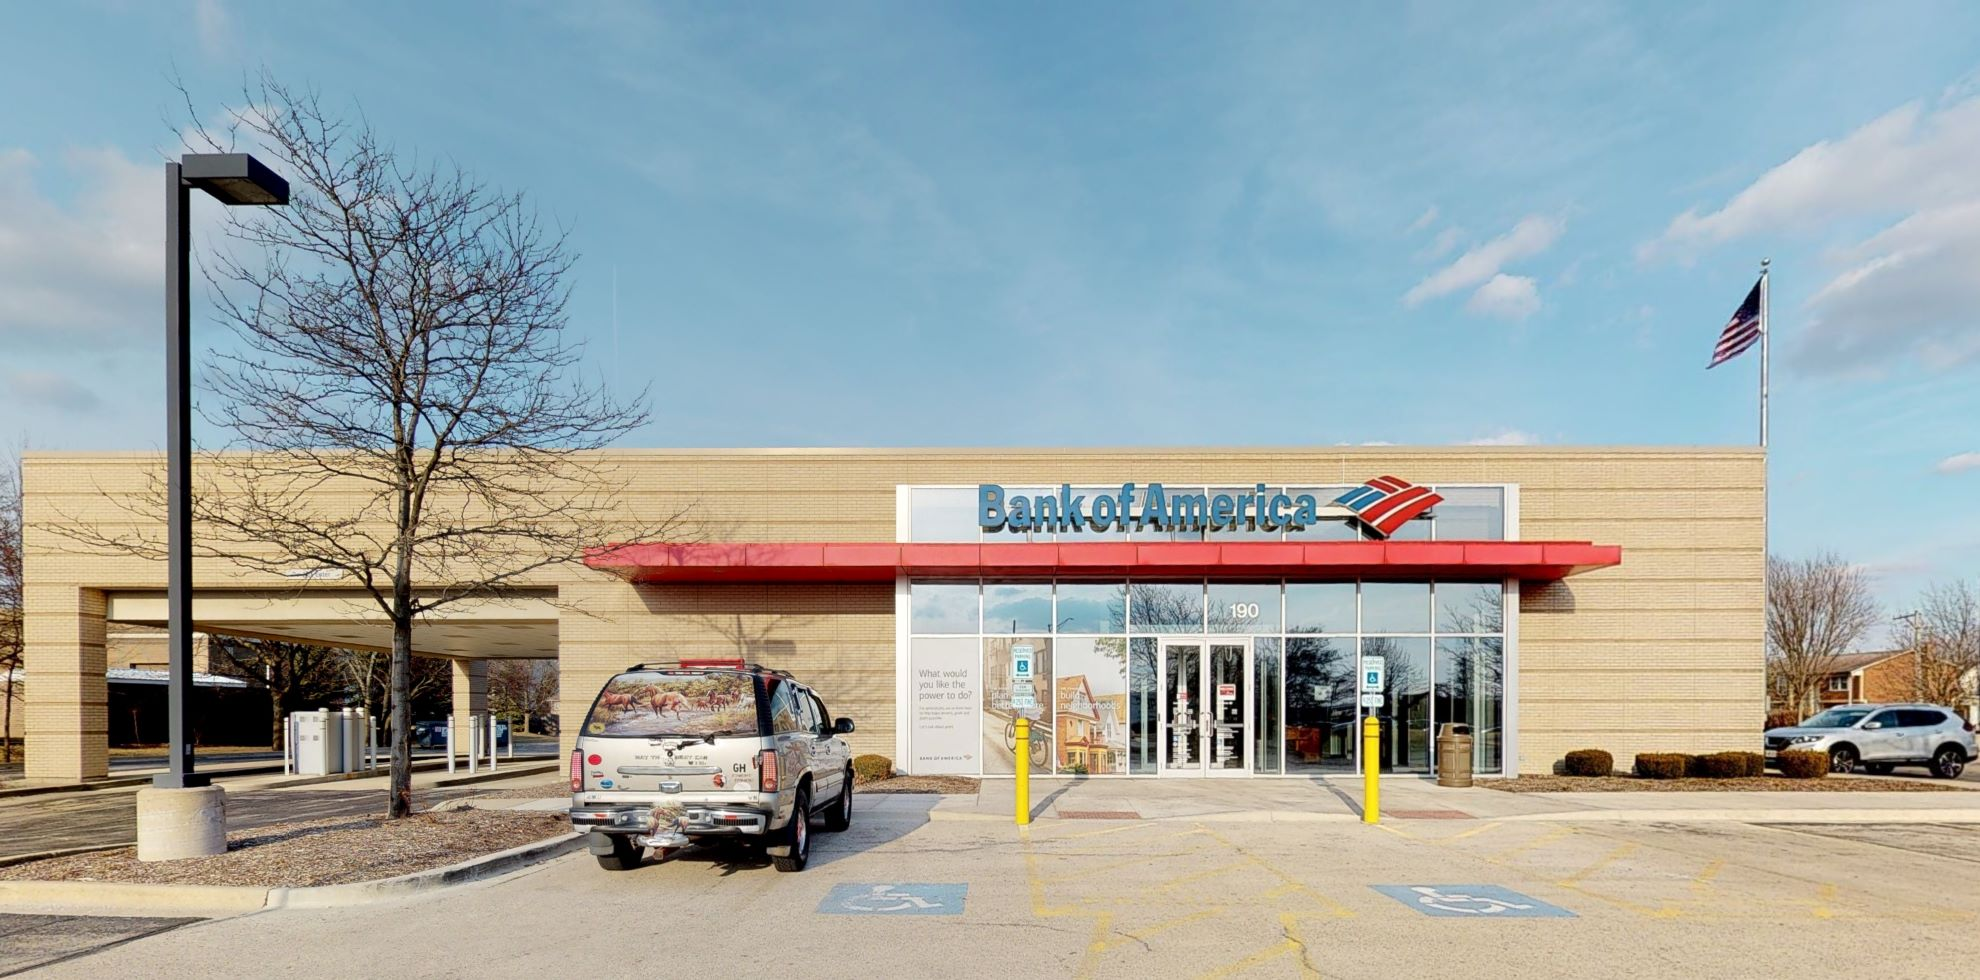 Bank of America financial center with drive-thru ATM   190 S Weber Rd, Bolingbrook, IL 60490